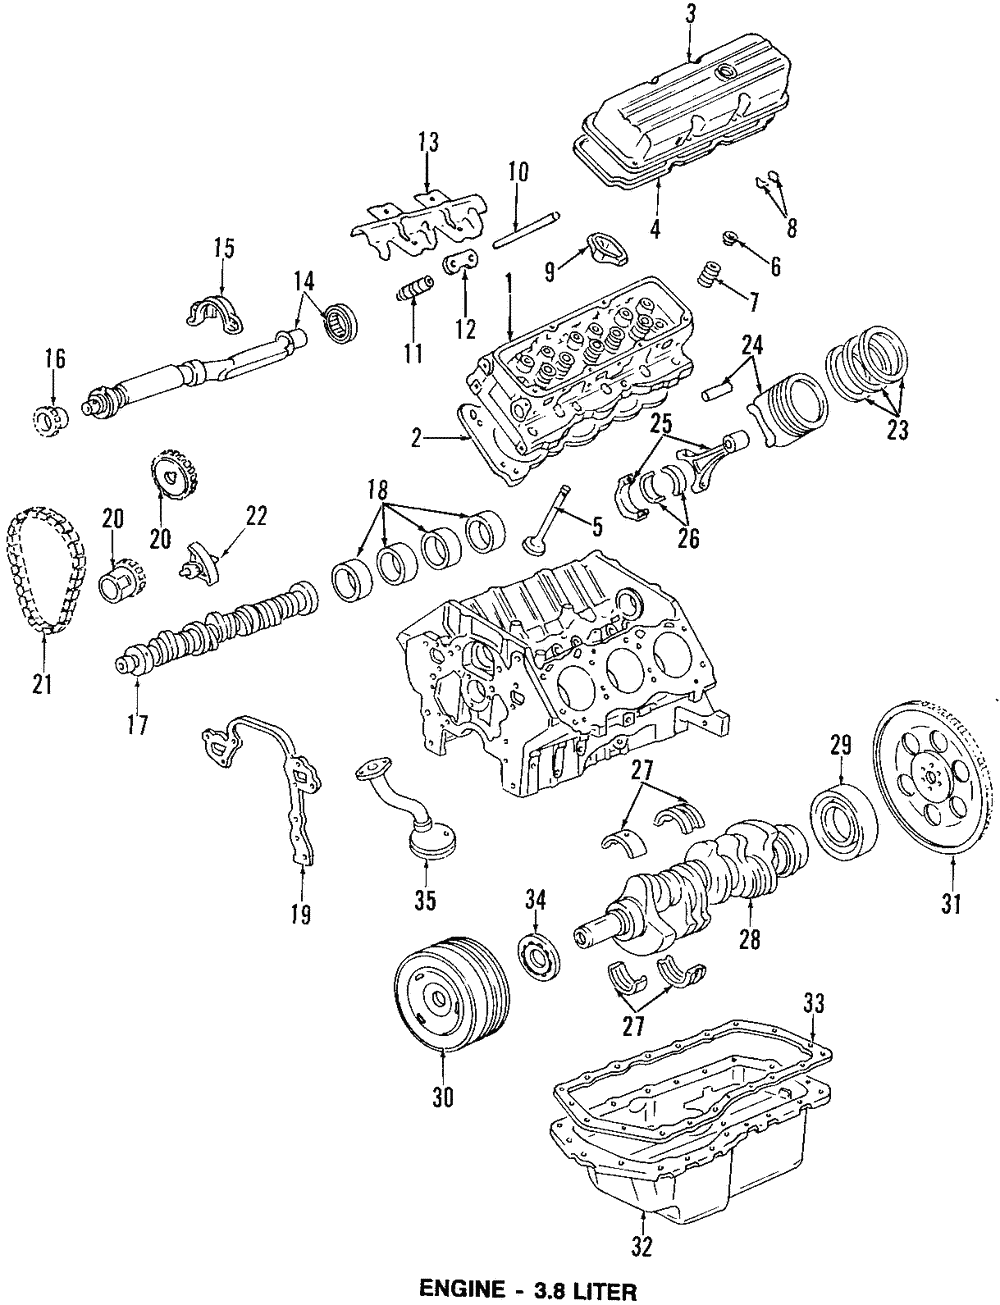 1999 Pontiac Bonneville Parts Diagram